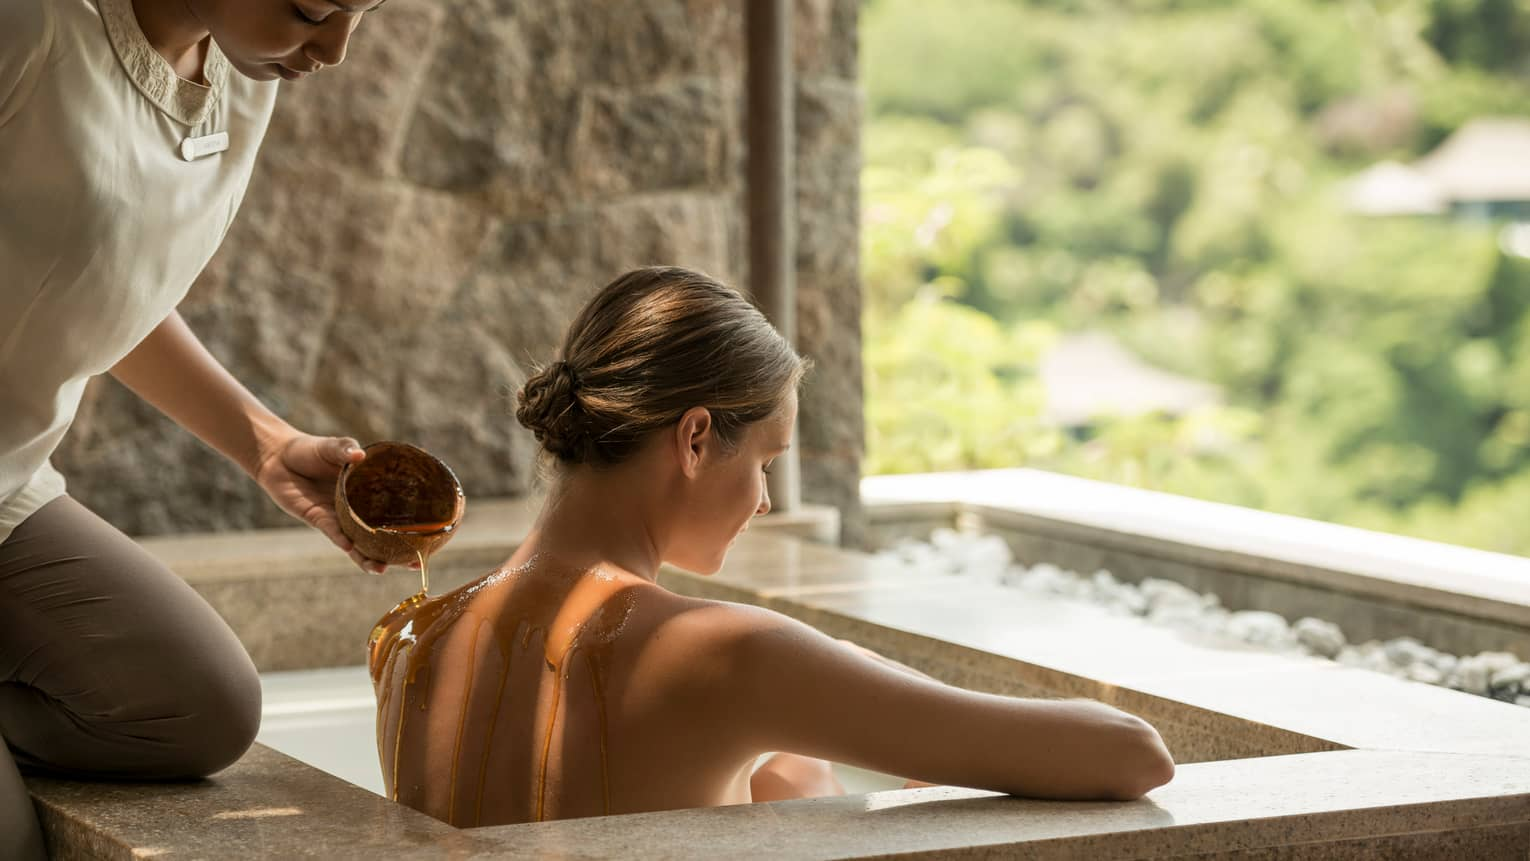 Spa attendant pours hot oil on woman's bare shoulders as she sits in rectangular tub